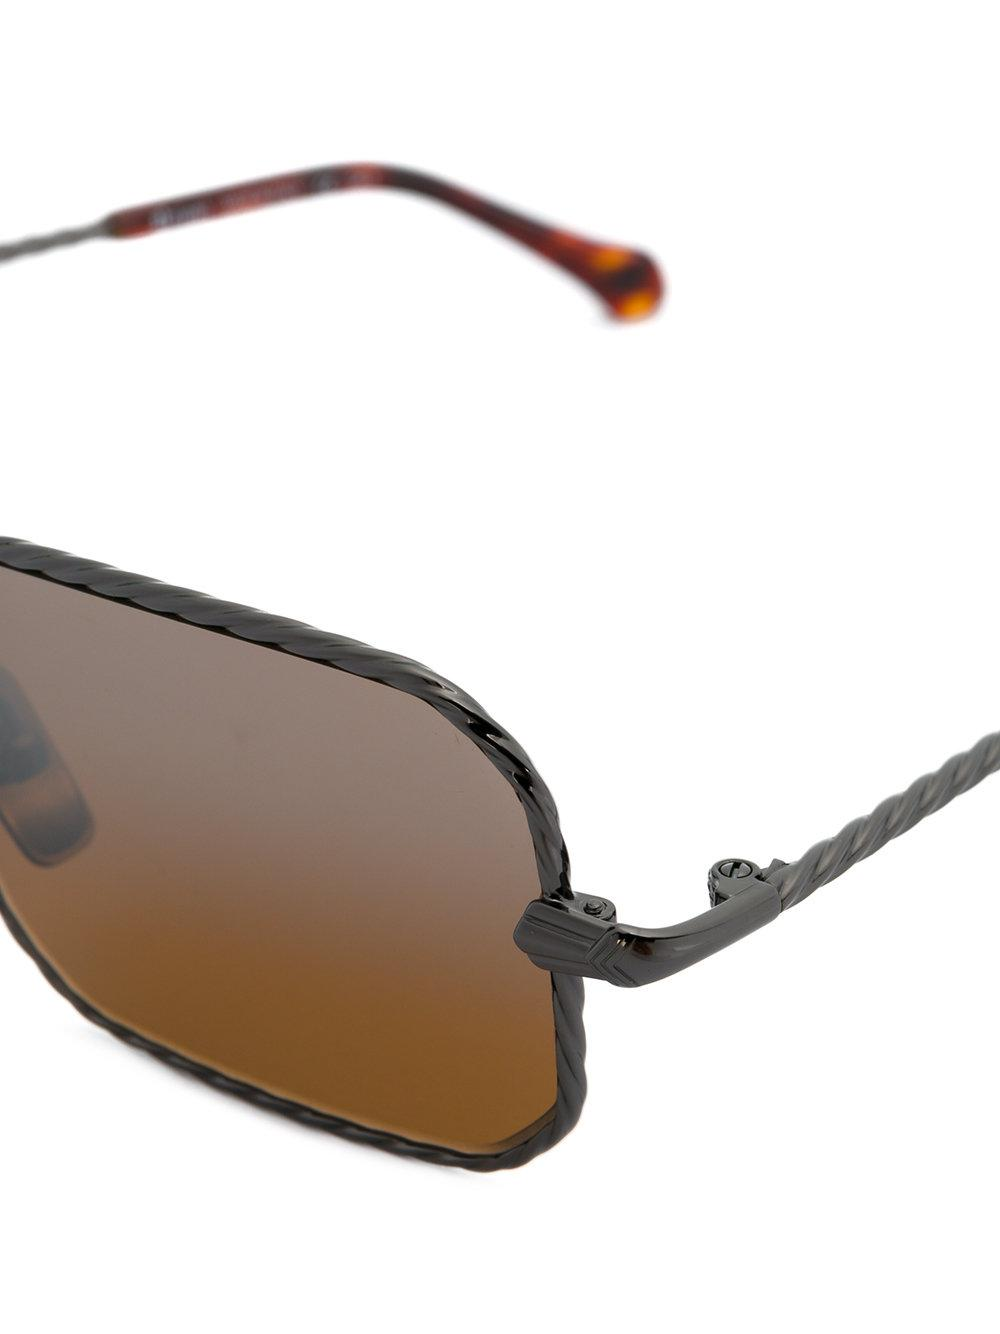 Brioni Square-frame Sunglasses in Brown